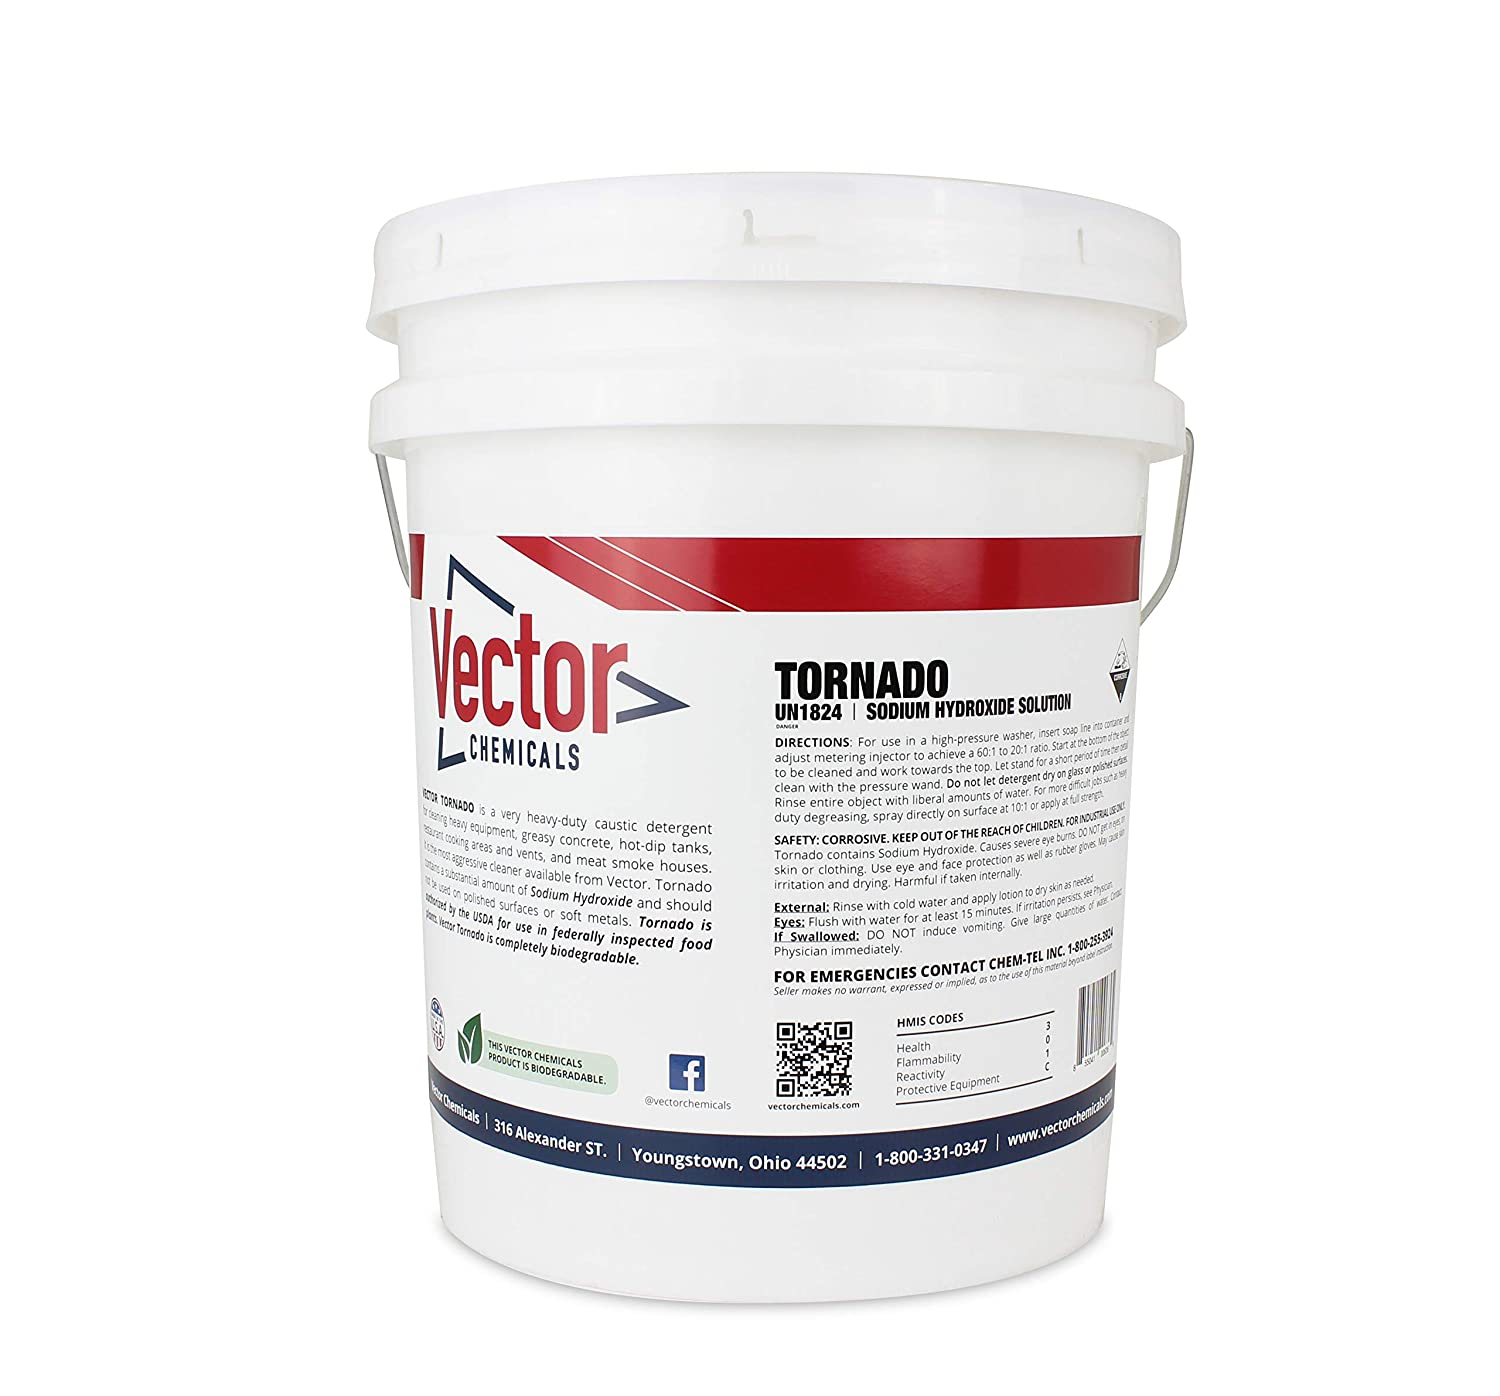 The Absolute Best Gutter Cleaning Concentate for Pressure and Soft Washing - Vector Tornado - 5 Gallon Pail Pack (with pail) - Makes up to 250 gallons of cleaner